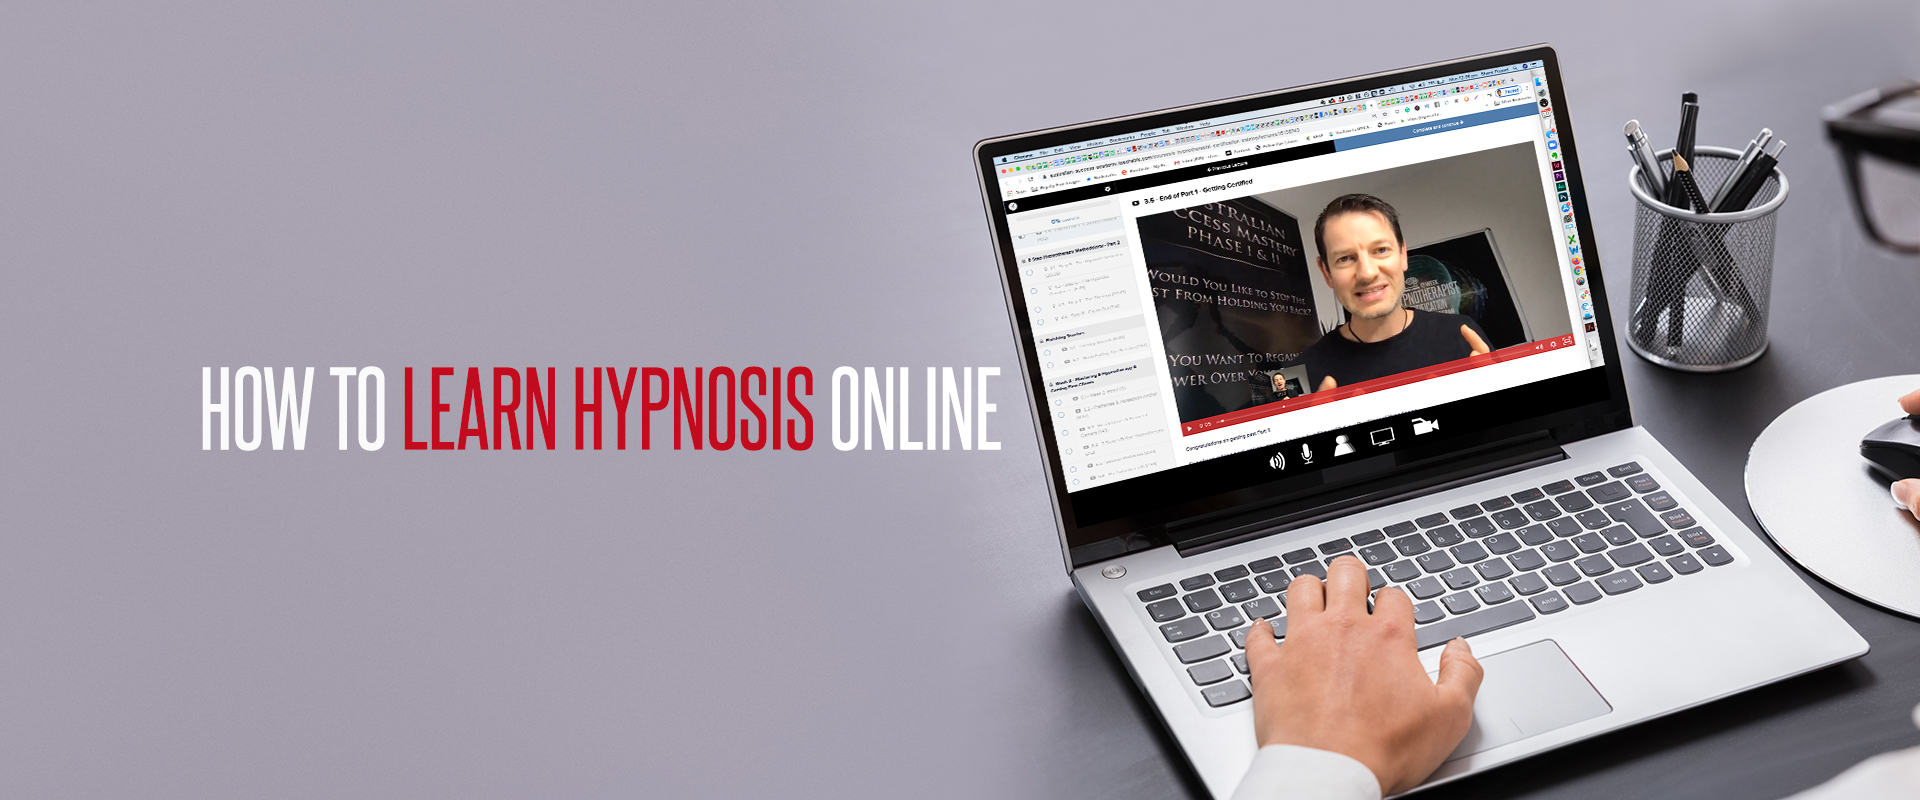 Learn Hypnosis Online Blog Banner